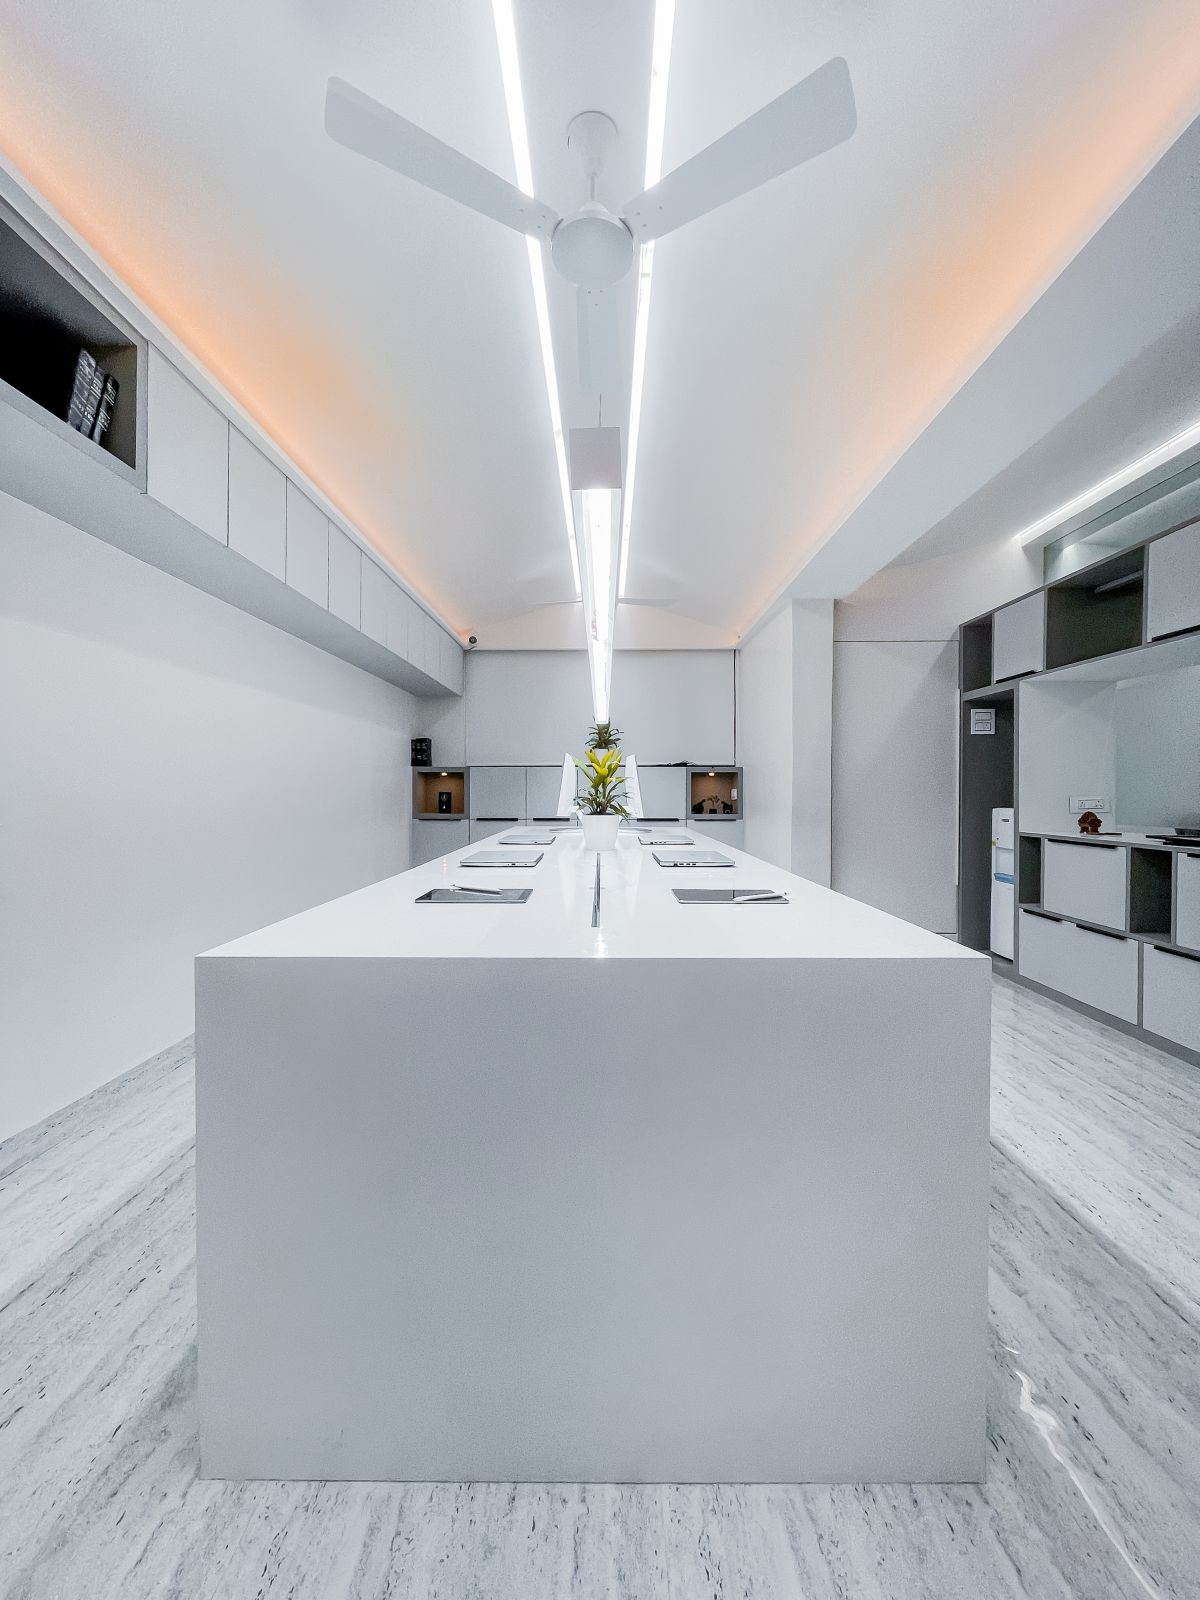 The White Space, at Ahmednagar, by Tres Atelier LLP 3